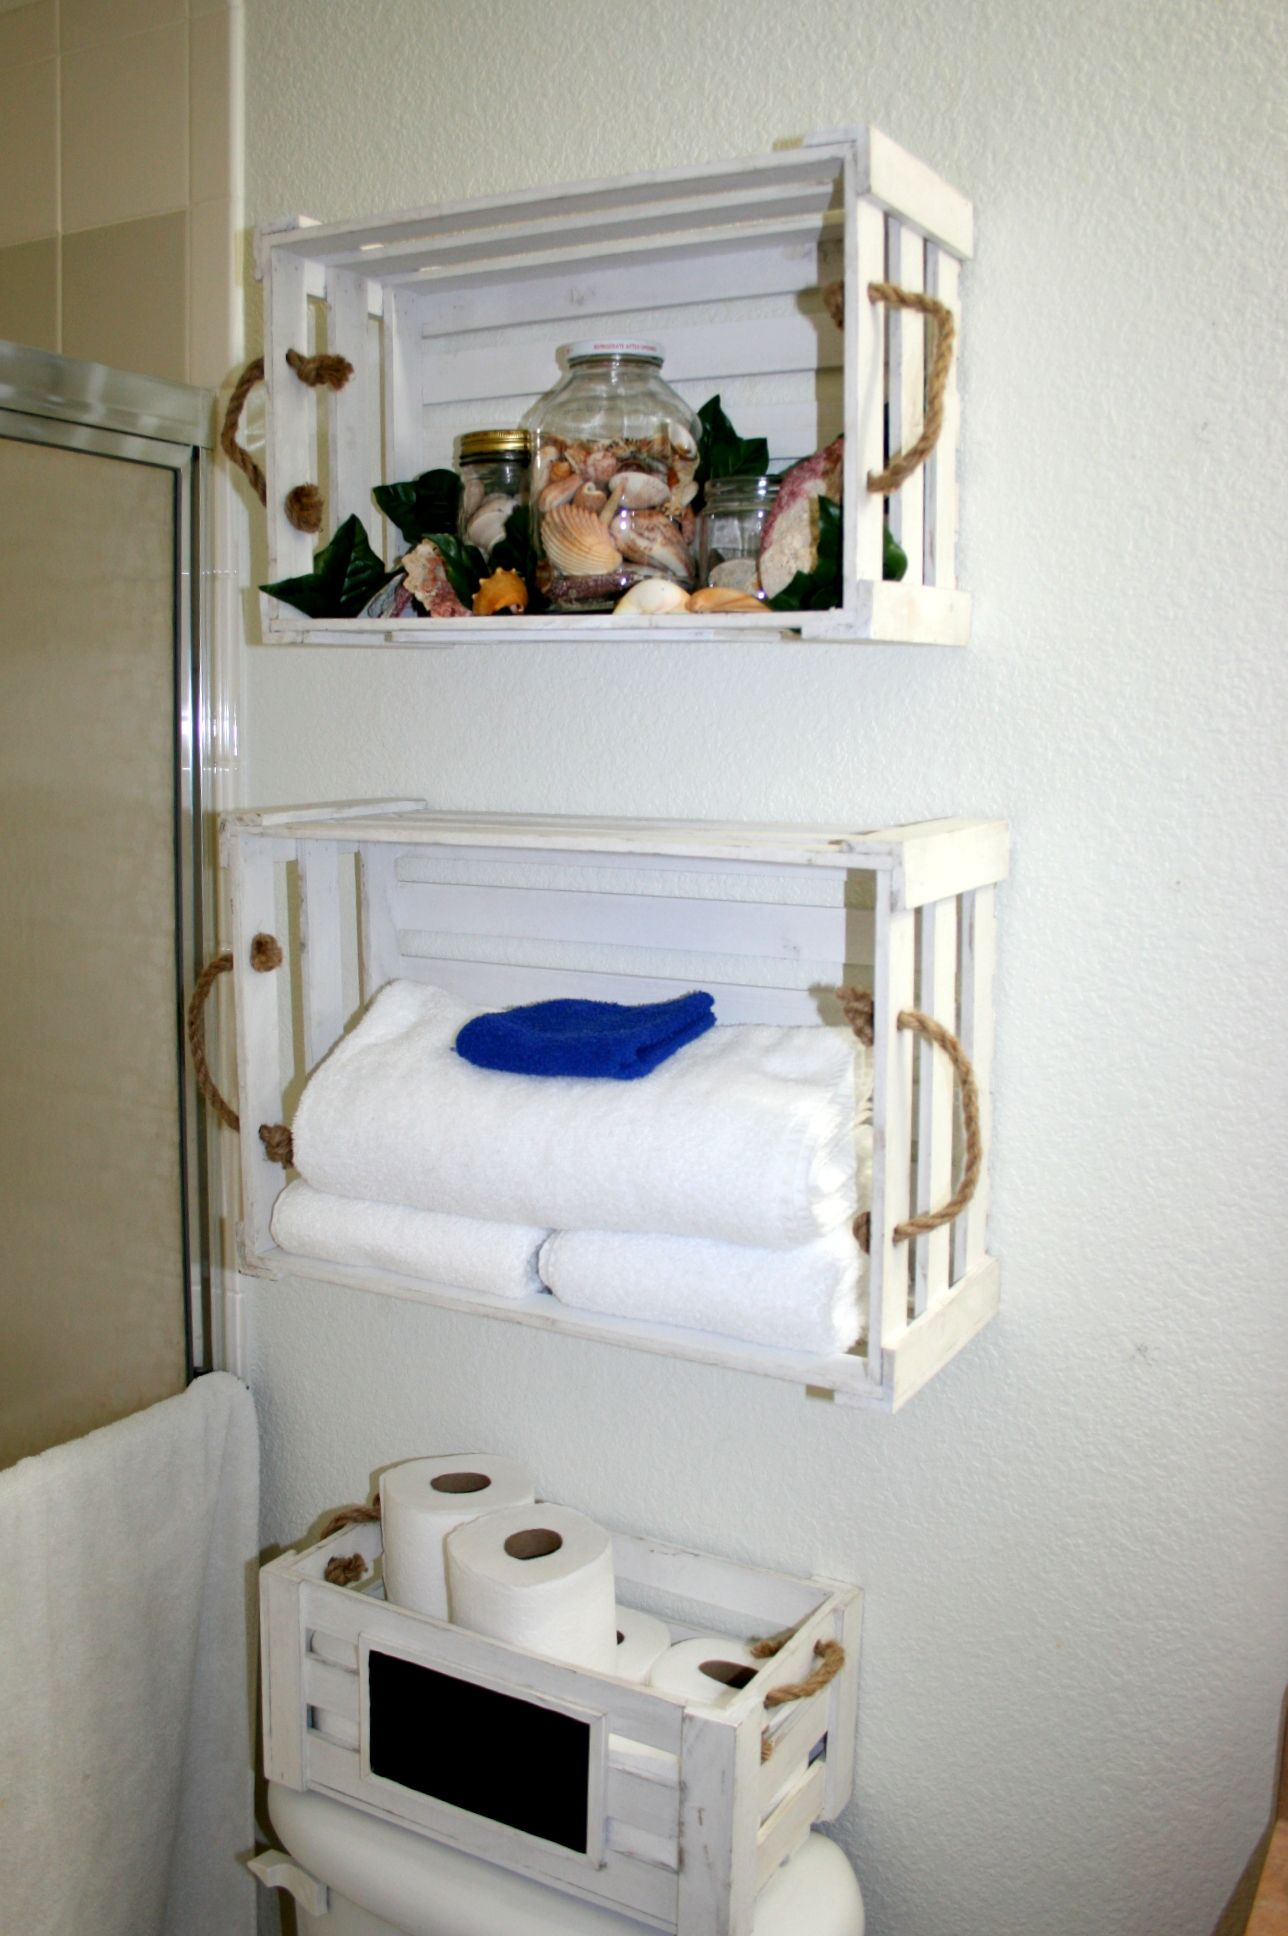 Found These Baskets At Ross And Made Them In Shelves For My Sea Themed  Bathroom